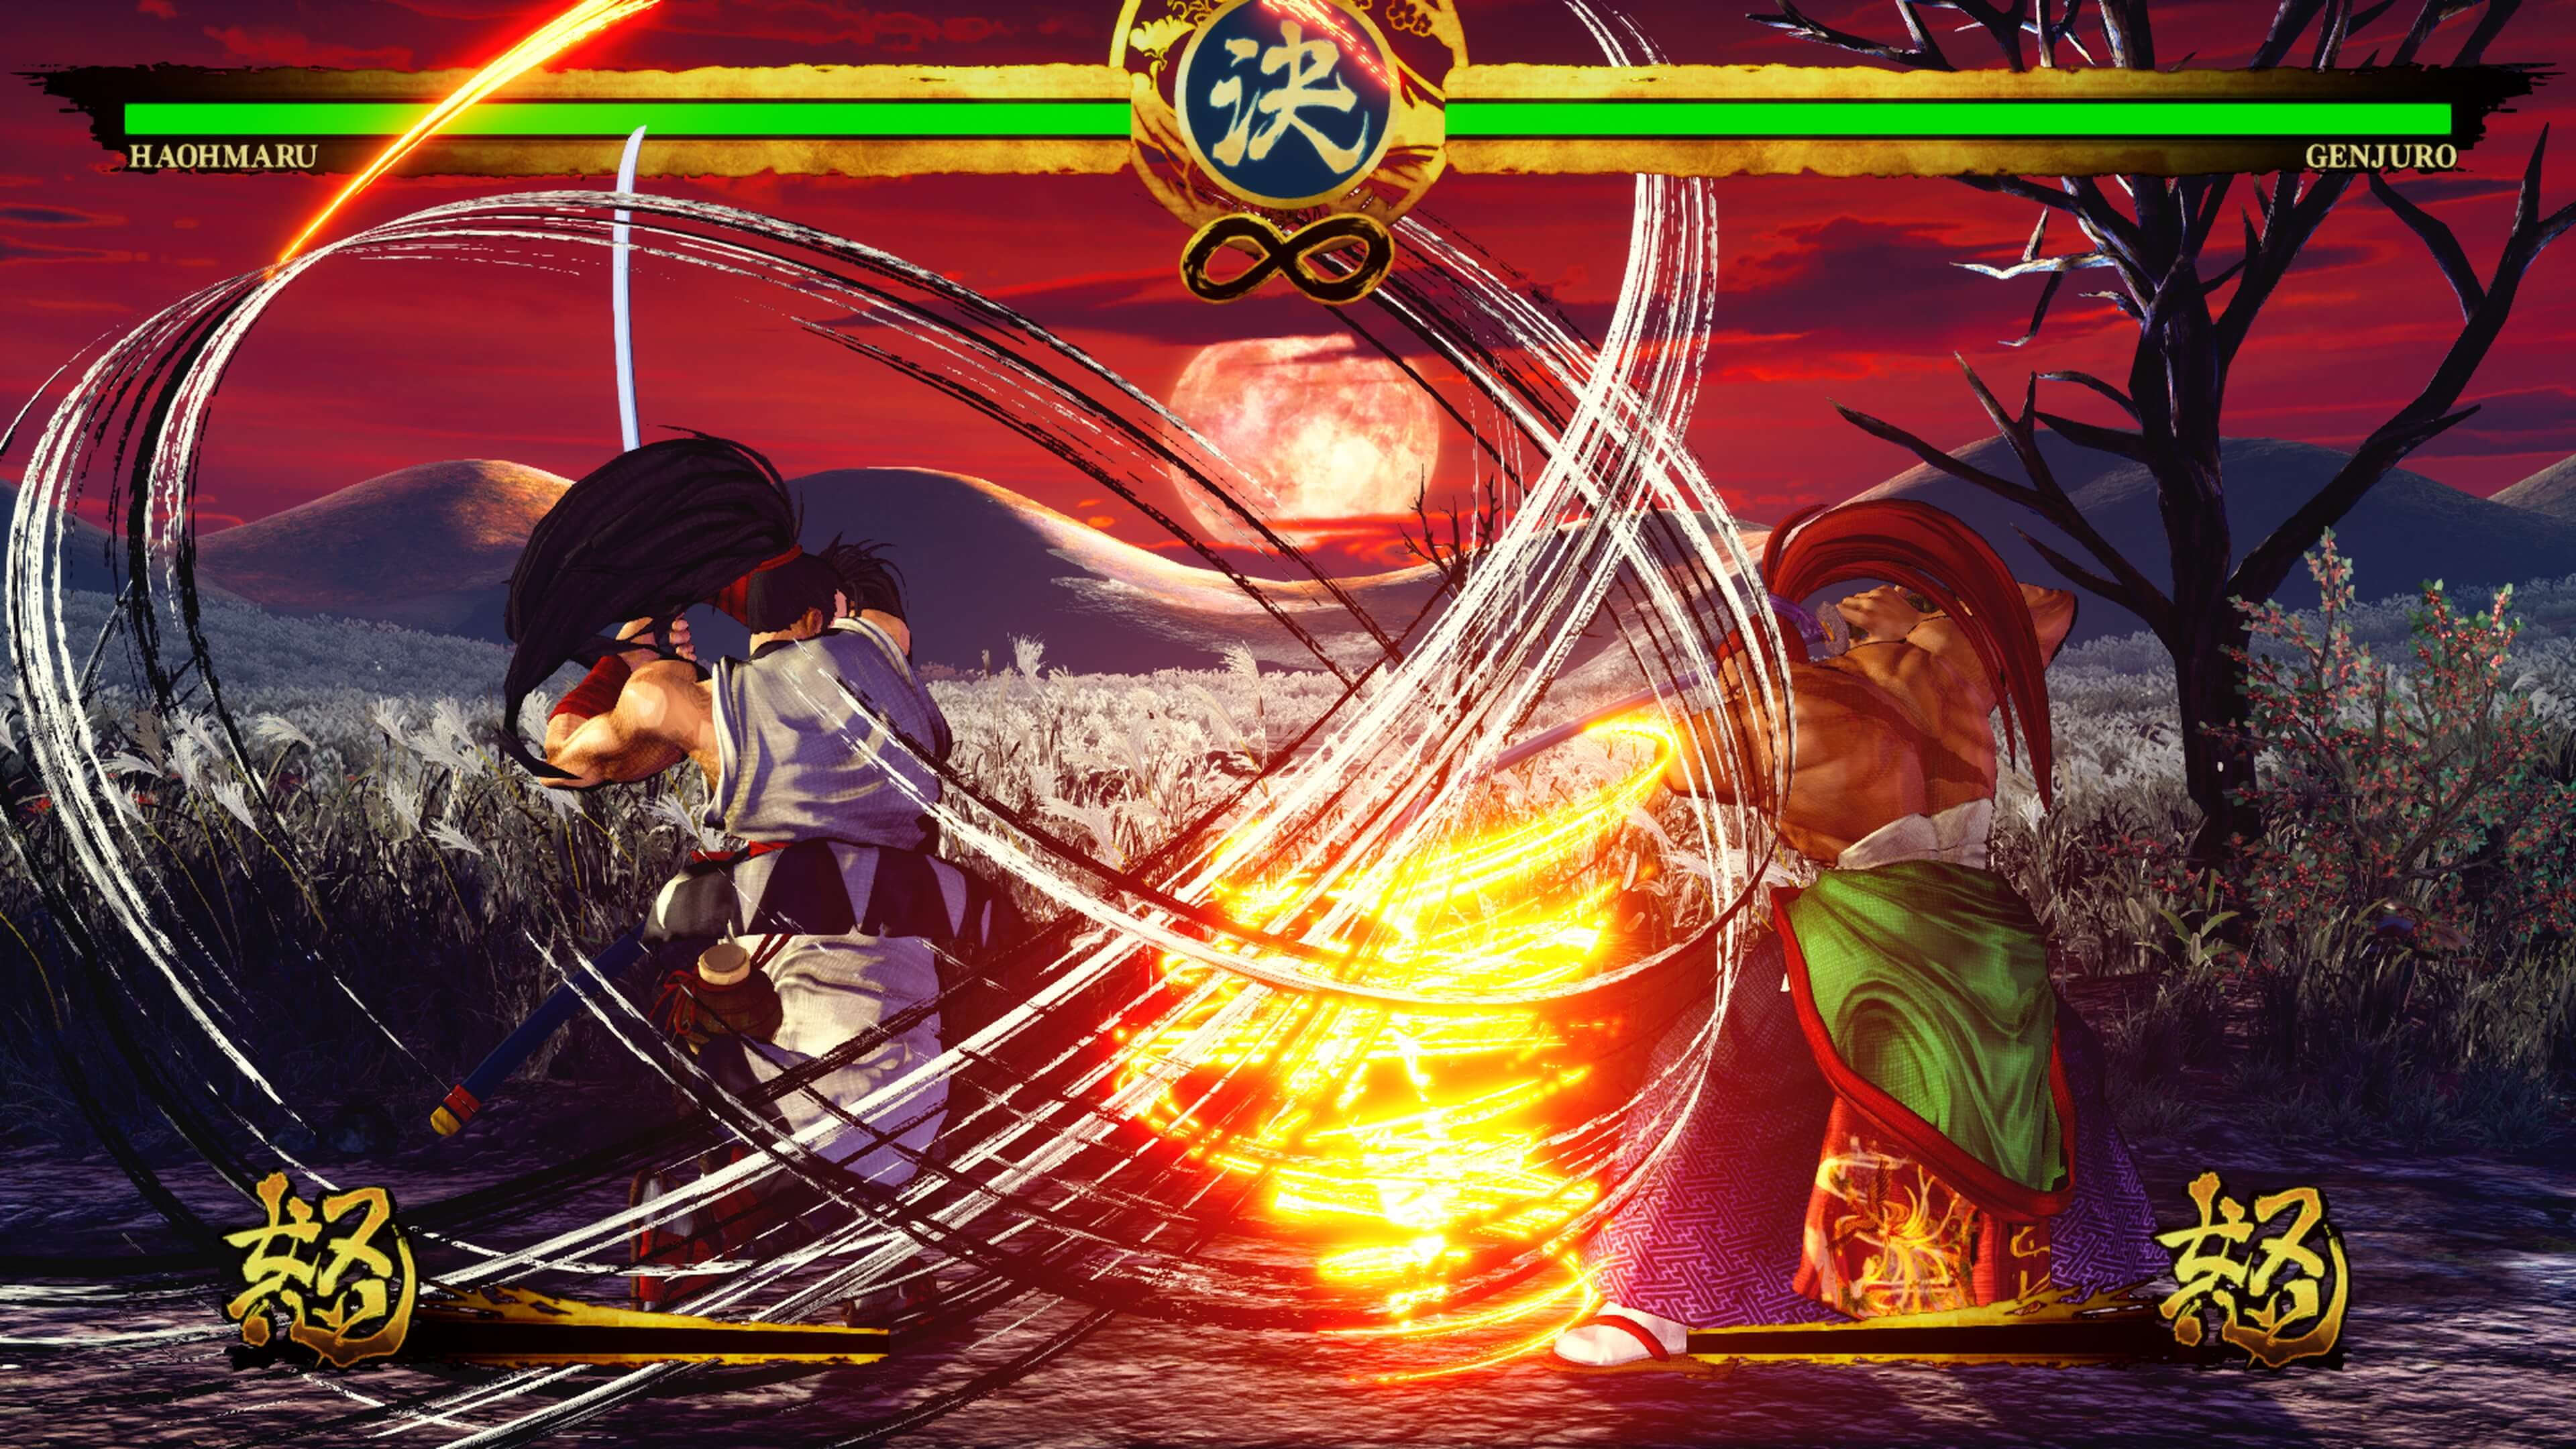 DeveloperInterview_Samurai_Shodown_004.jpg